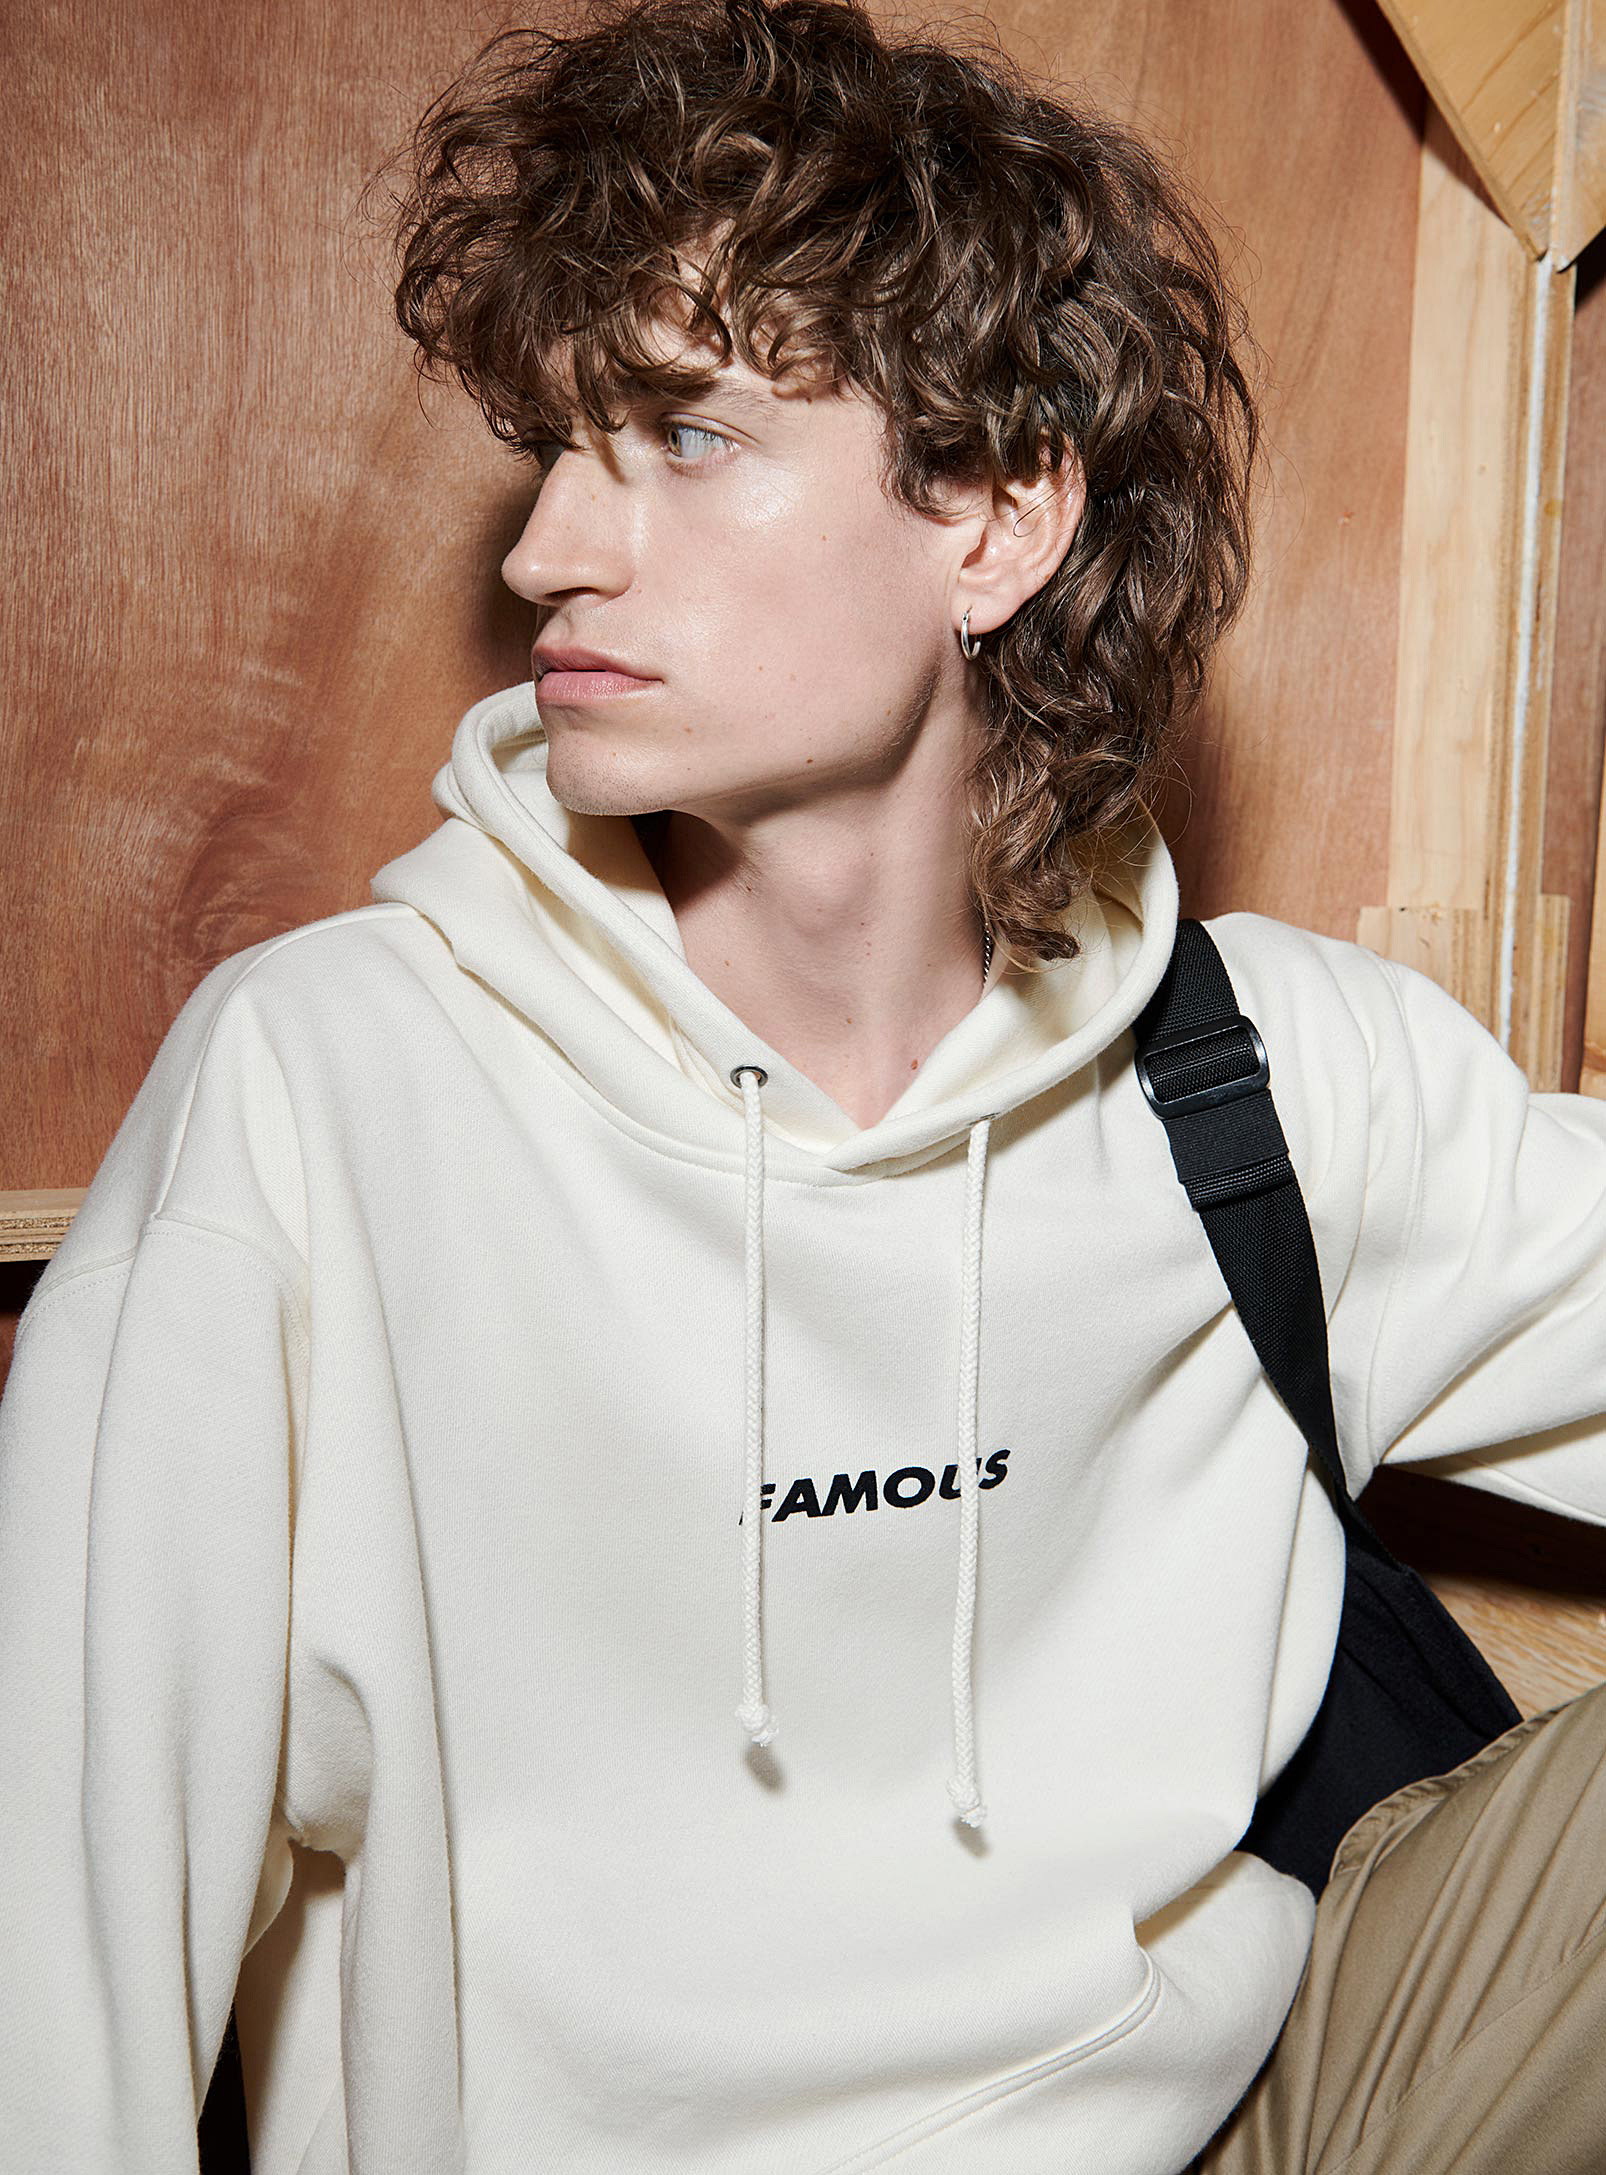 A person wearing a hoodie that says famous on the chest